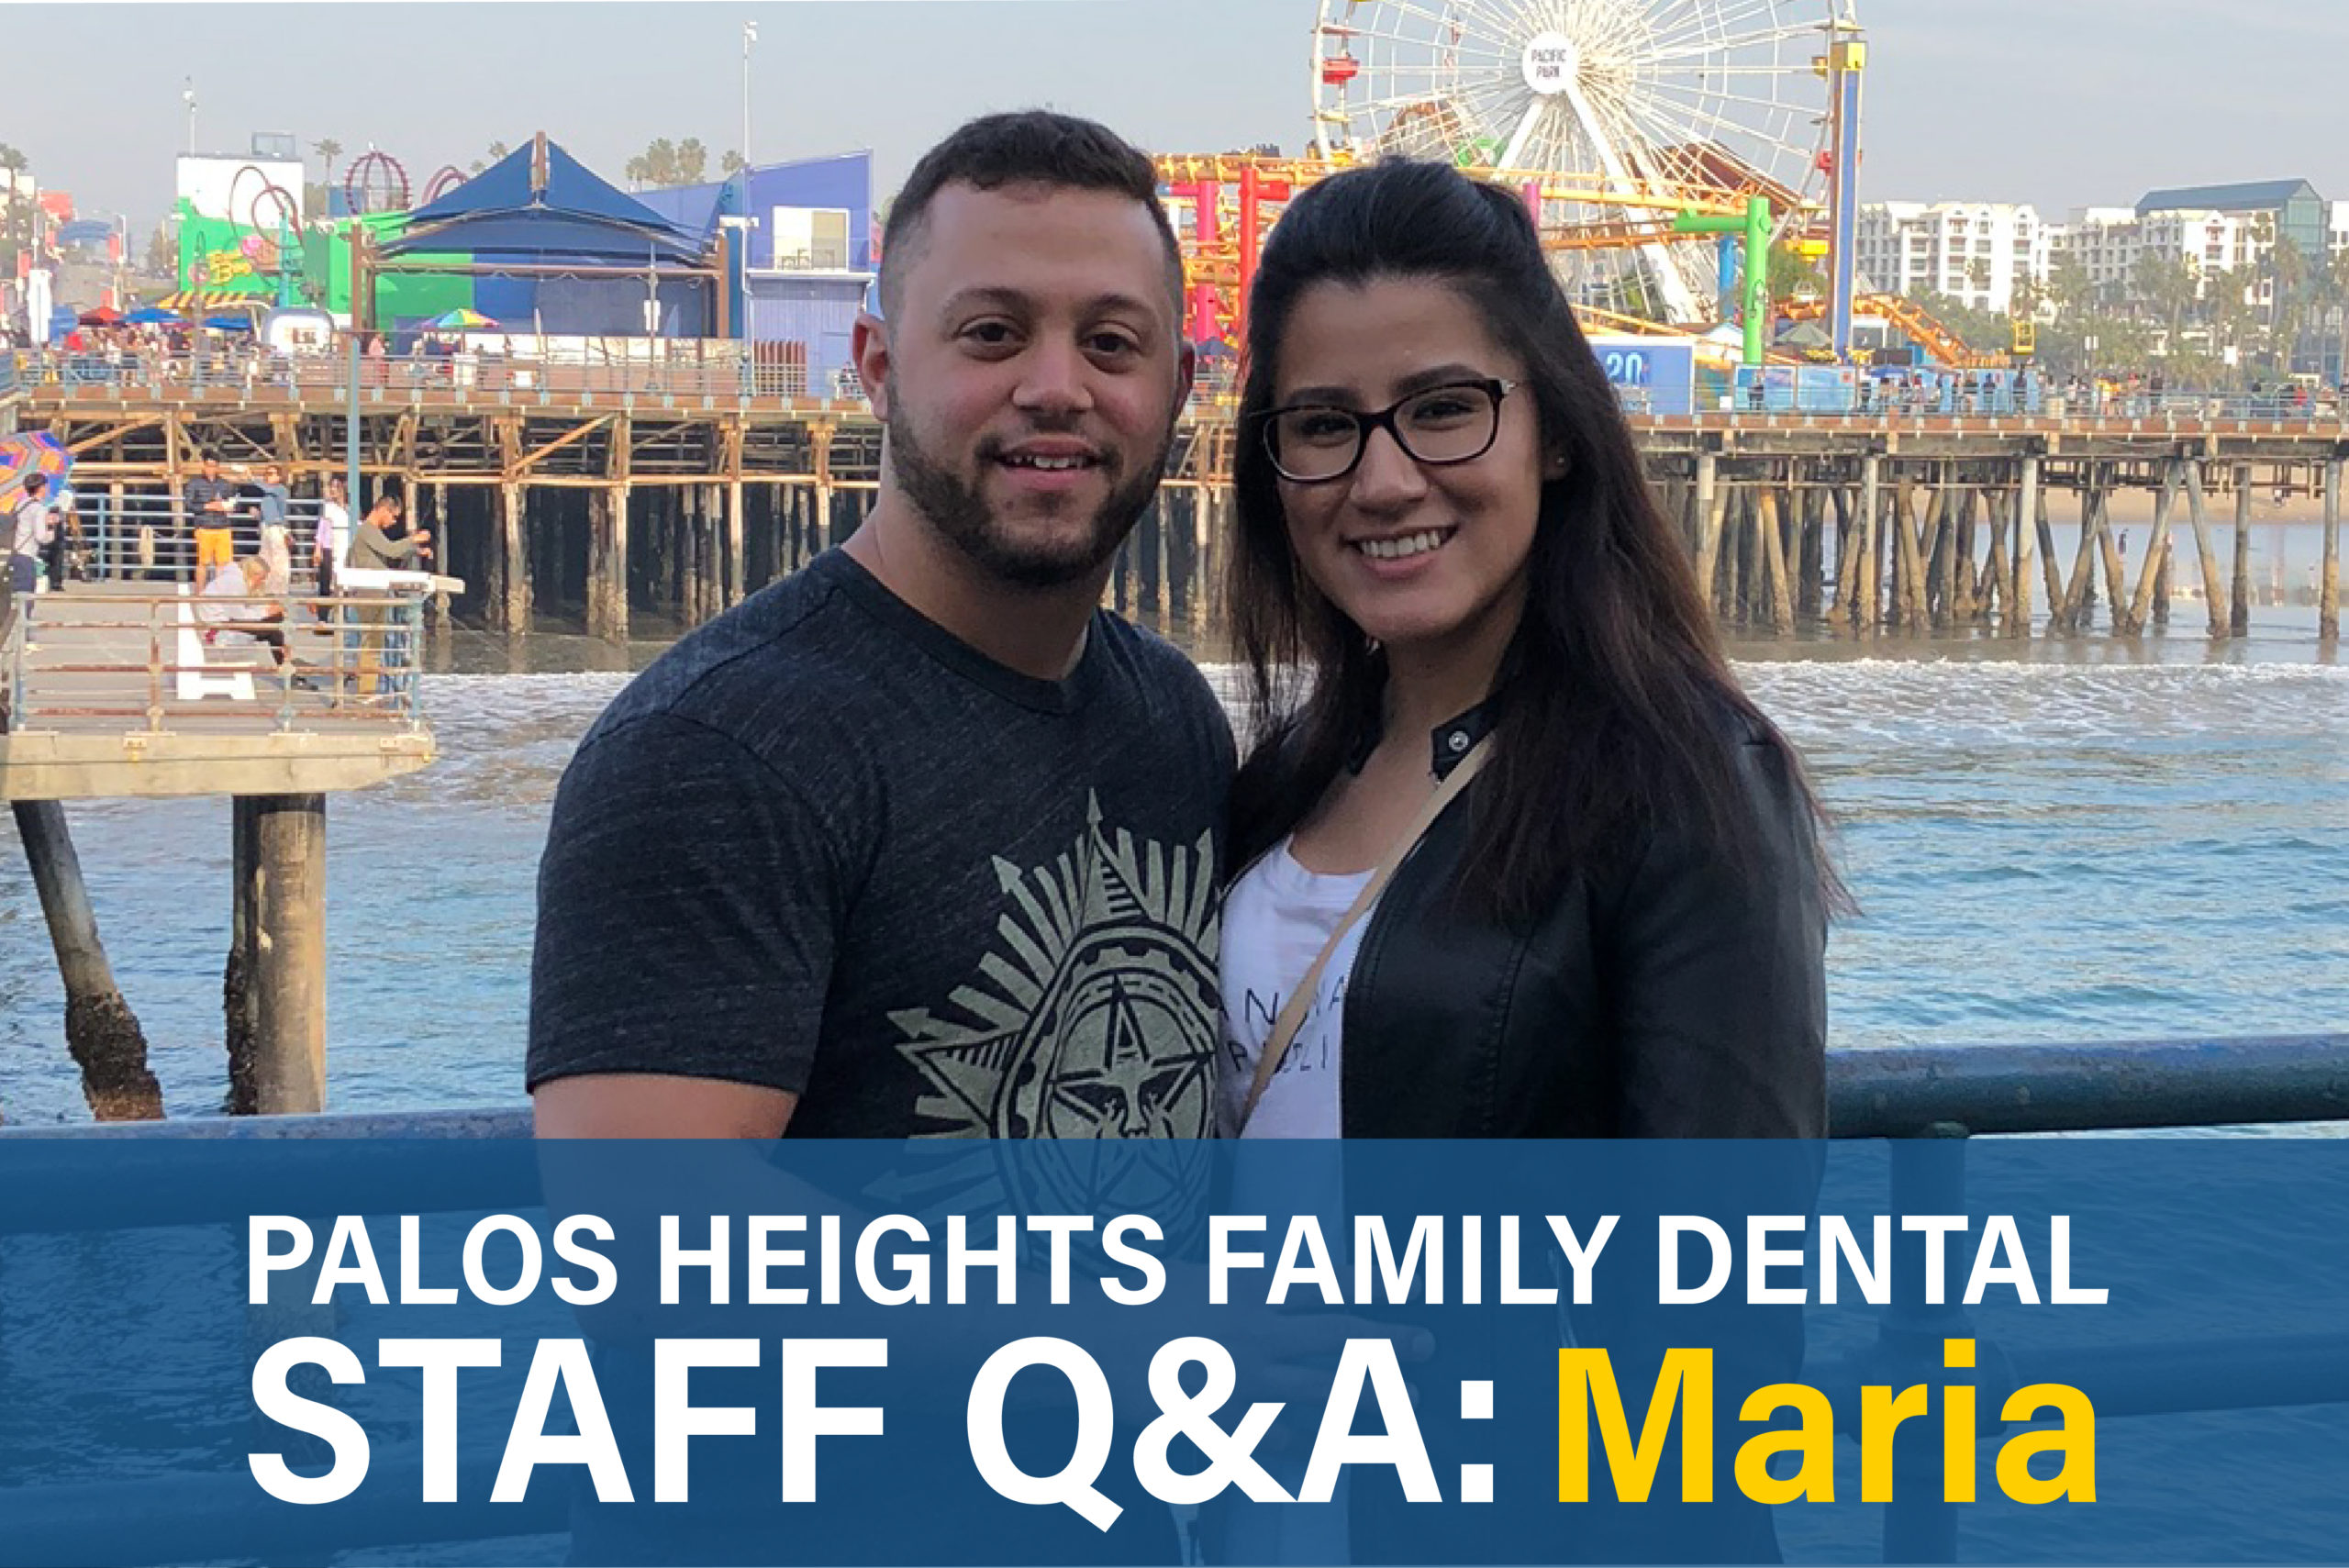 Palos Heights Family Dental Staff Q&A: Maria, on the right, posing for a photo with family.